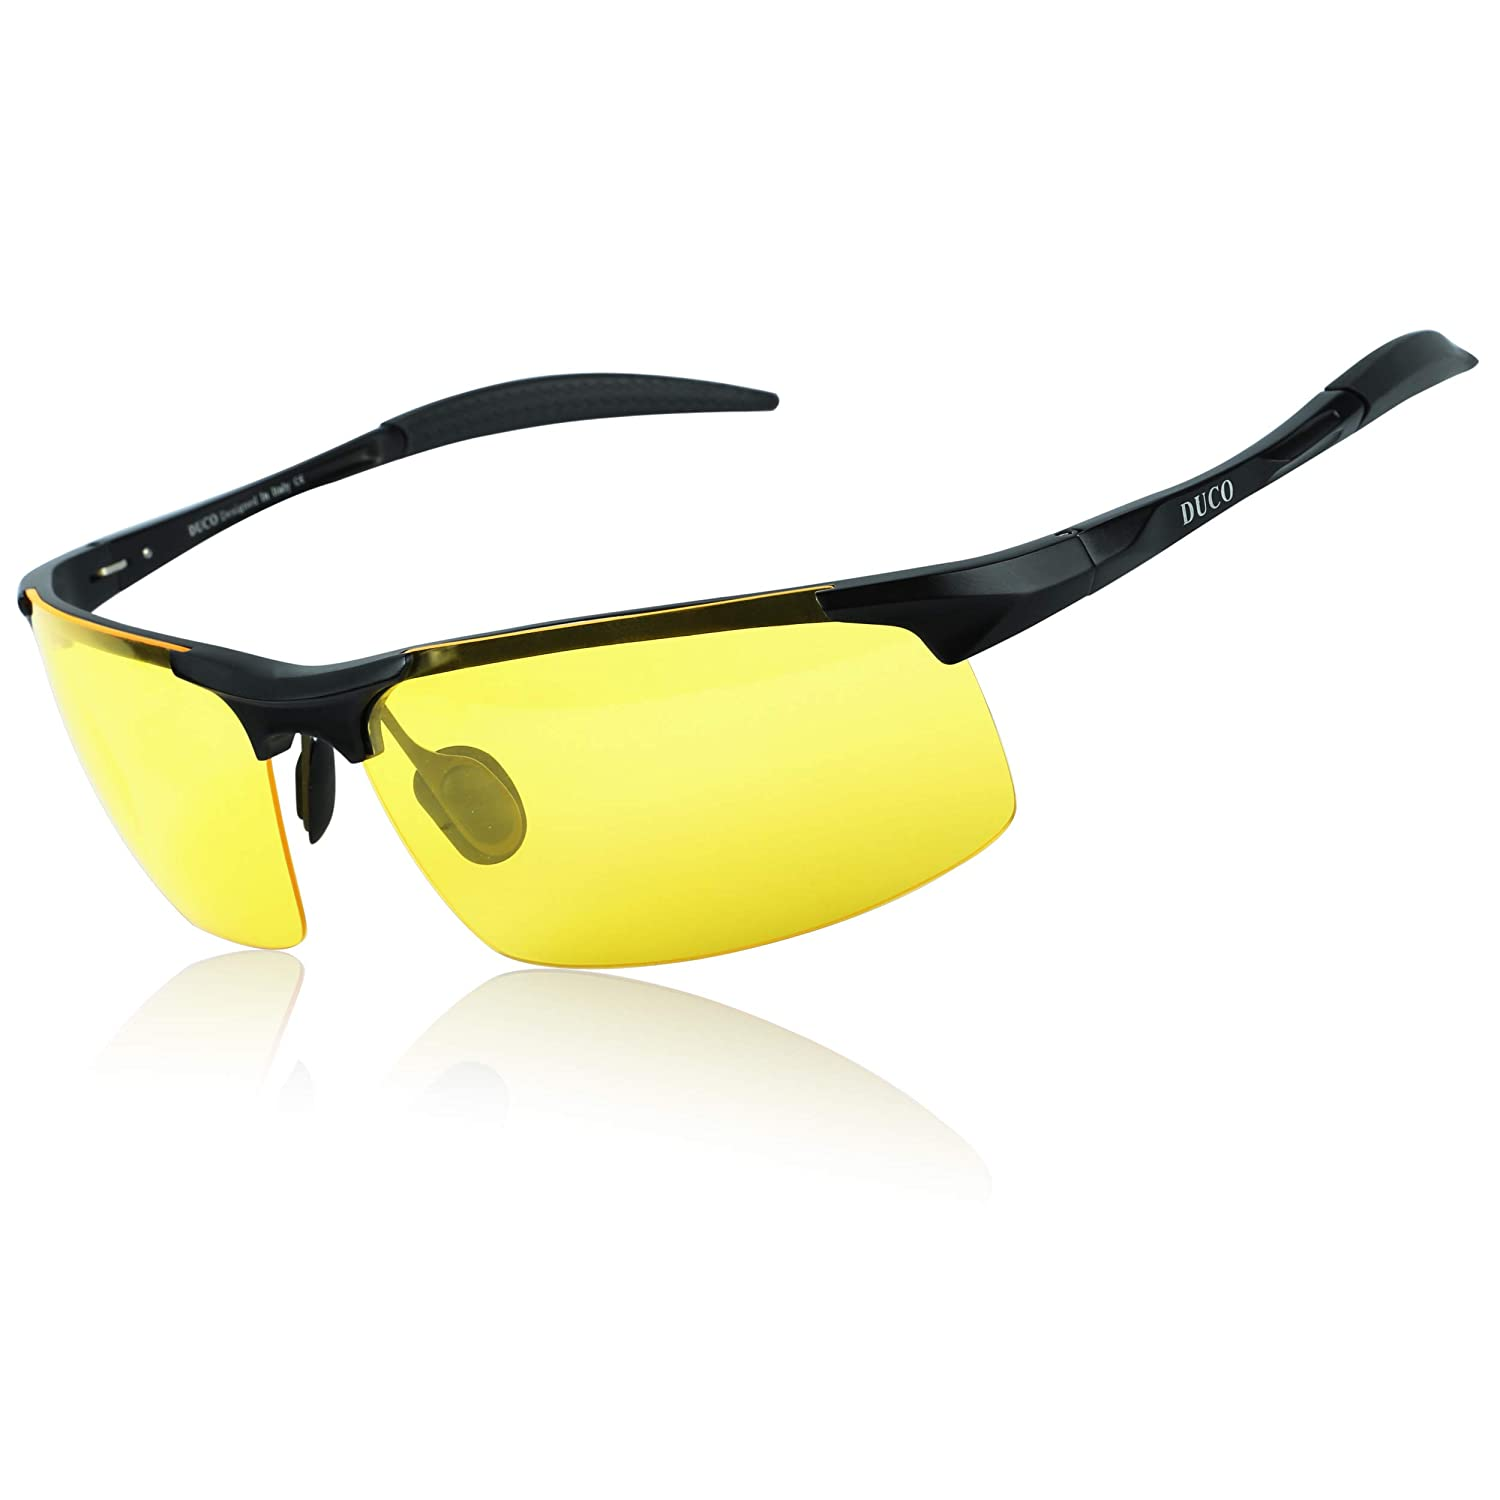 9eee305b6896 Duco Night-vision Glasses Polarized Night Driving Men s Shooting Glasses  8177 Black Frame Yellow Lens  Amazon.ca  Sports   Outdoors